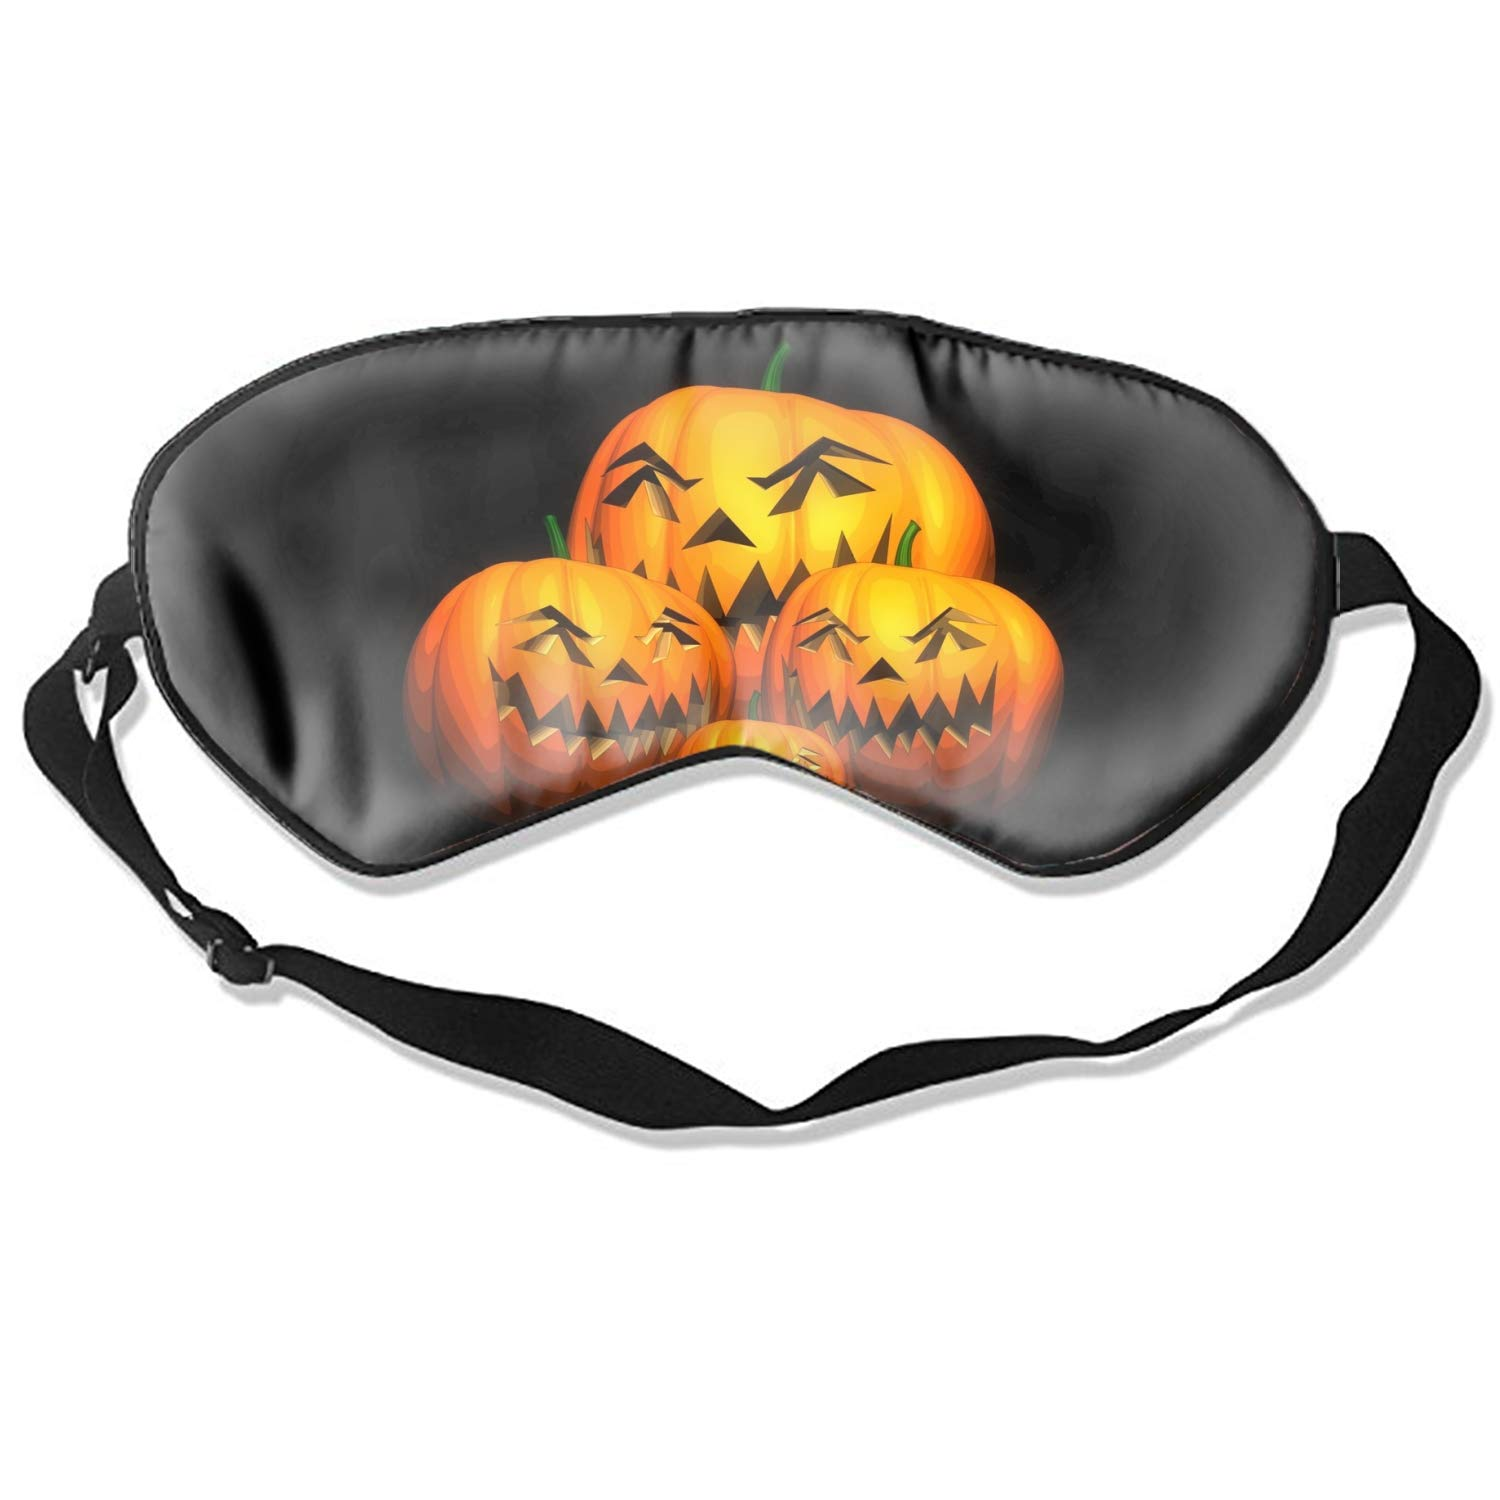 Amazon.com : Sleeping Eye Mask Art Print Natural Silk Eye Mask Cover With Adjustable Strap : Beauty